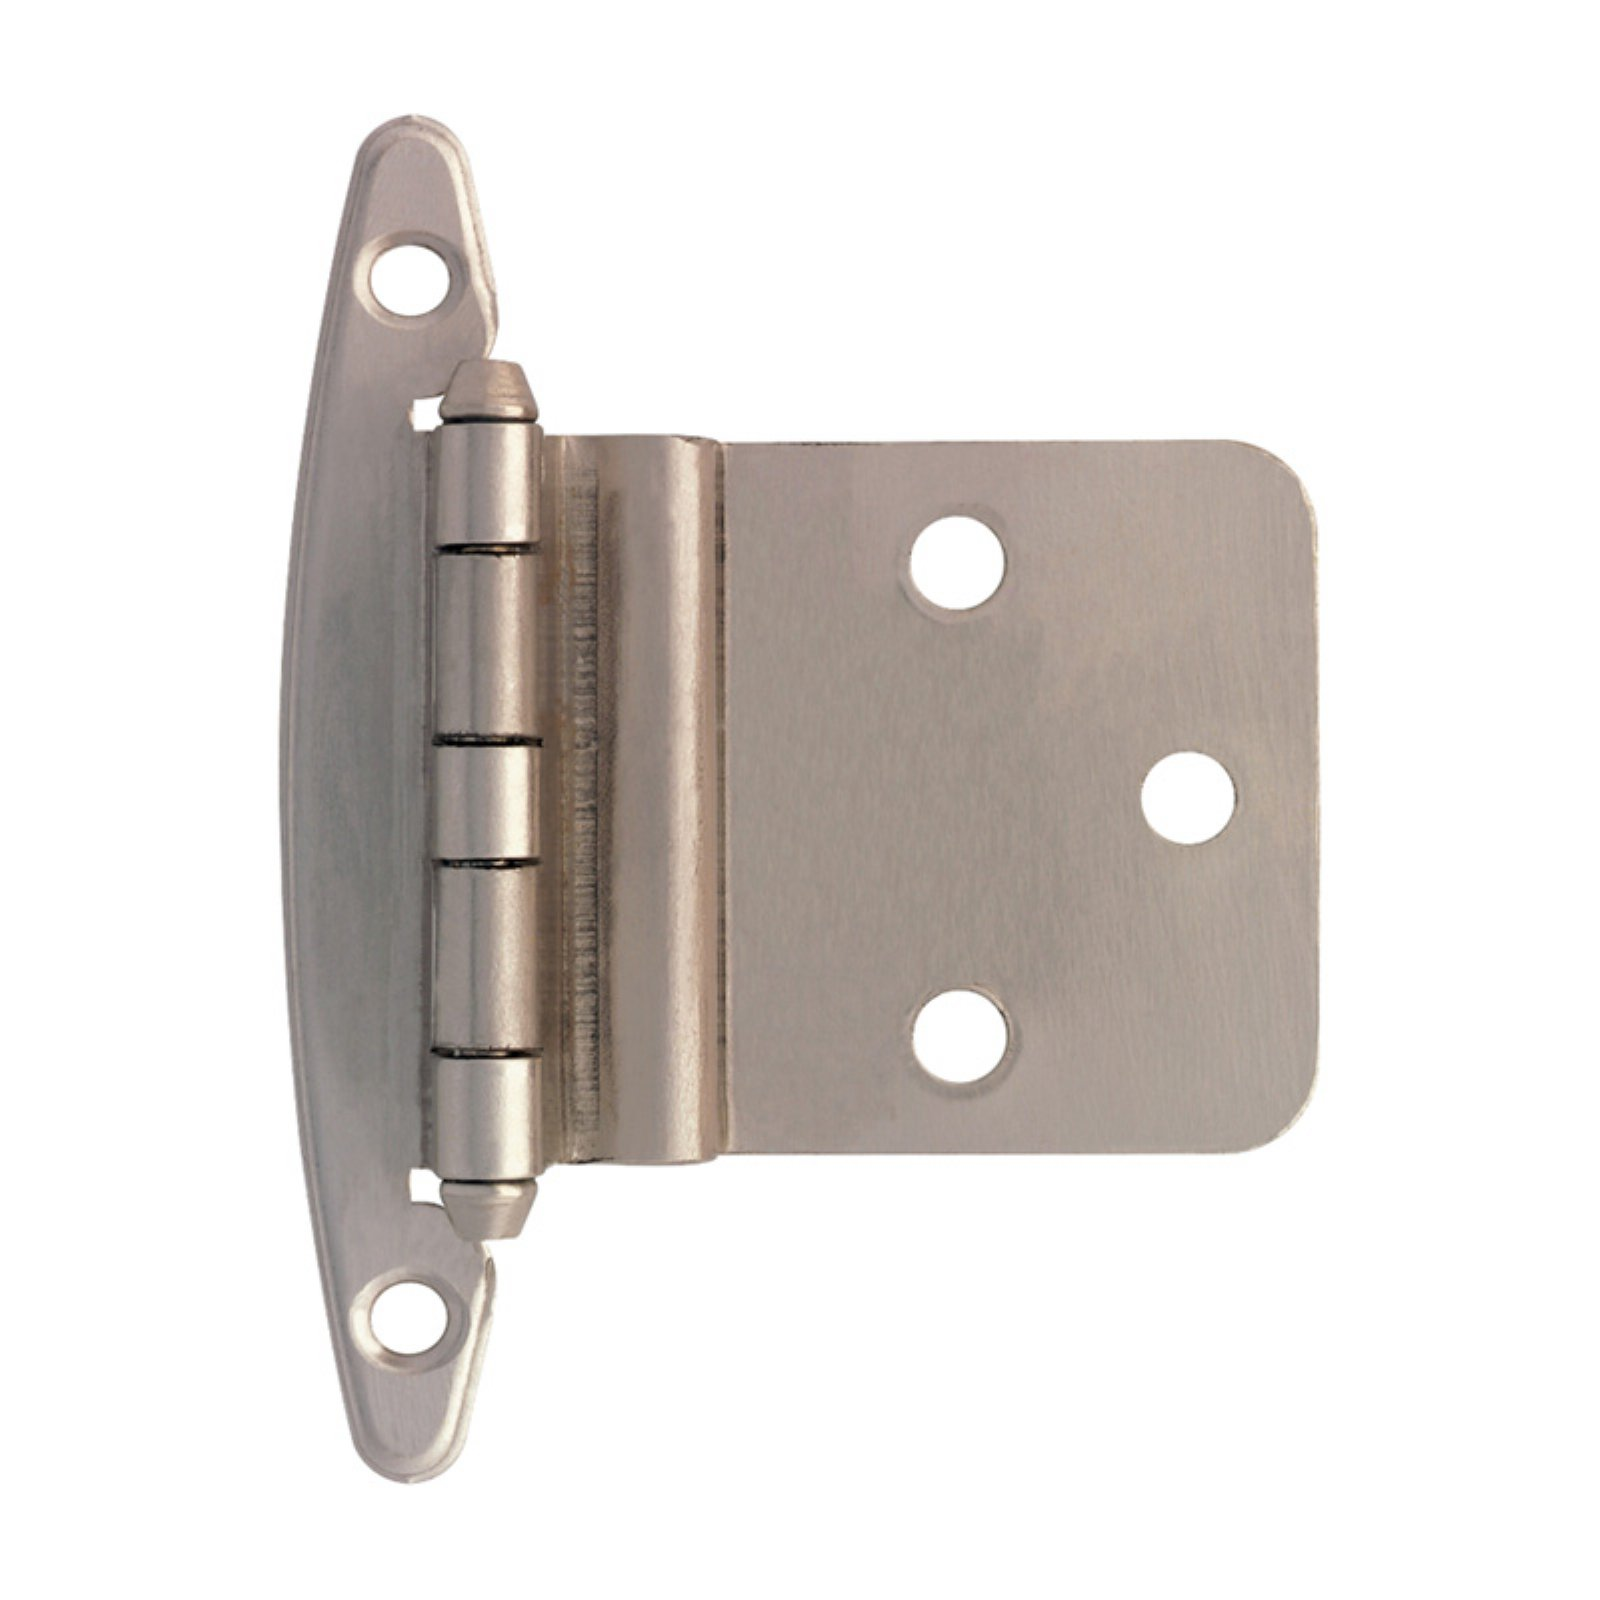 Liberty Hardware Inset Hinge without Spring - Set of 10